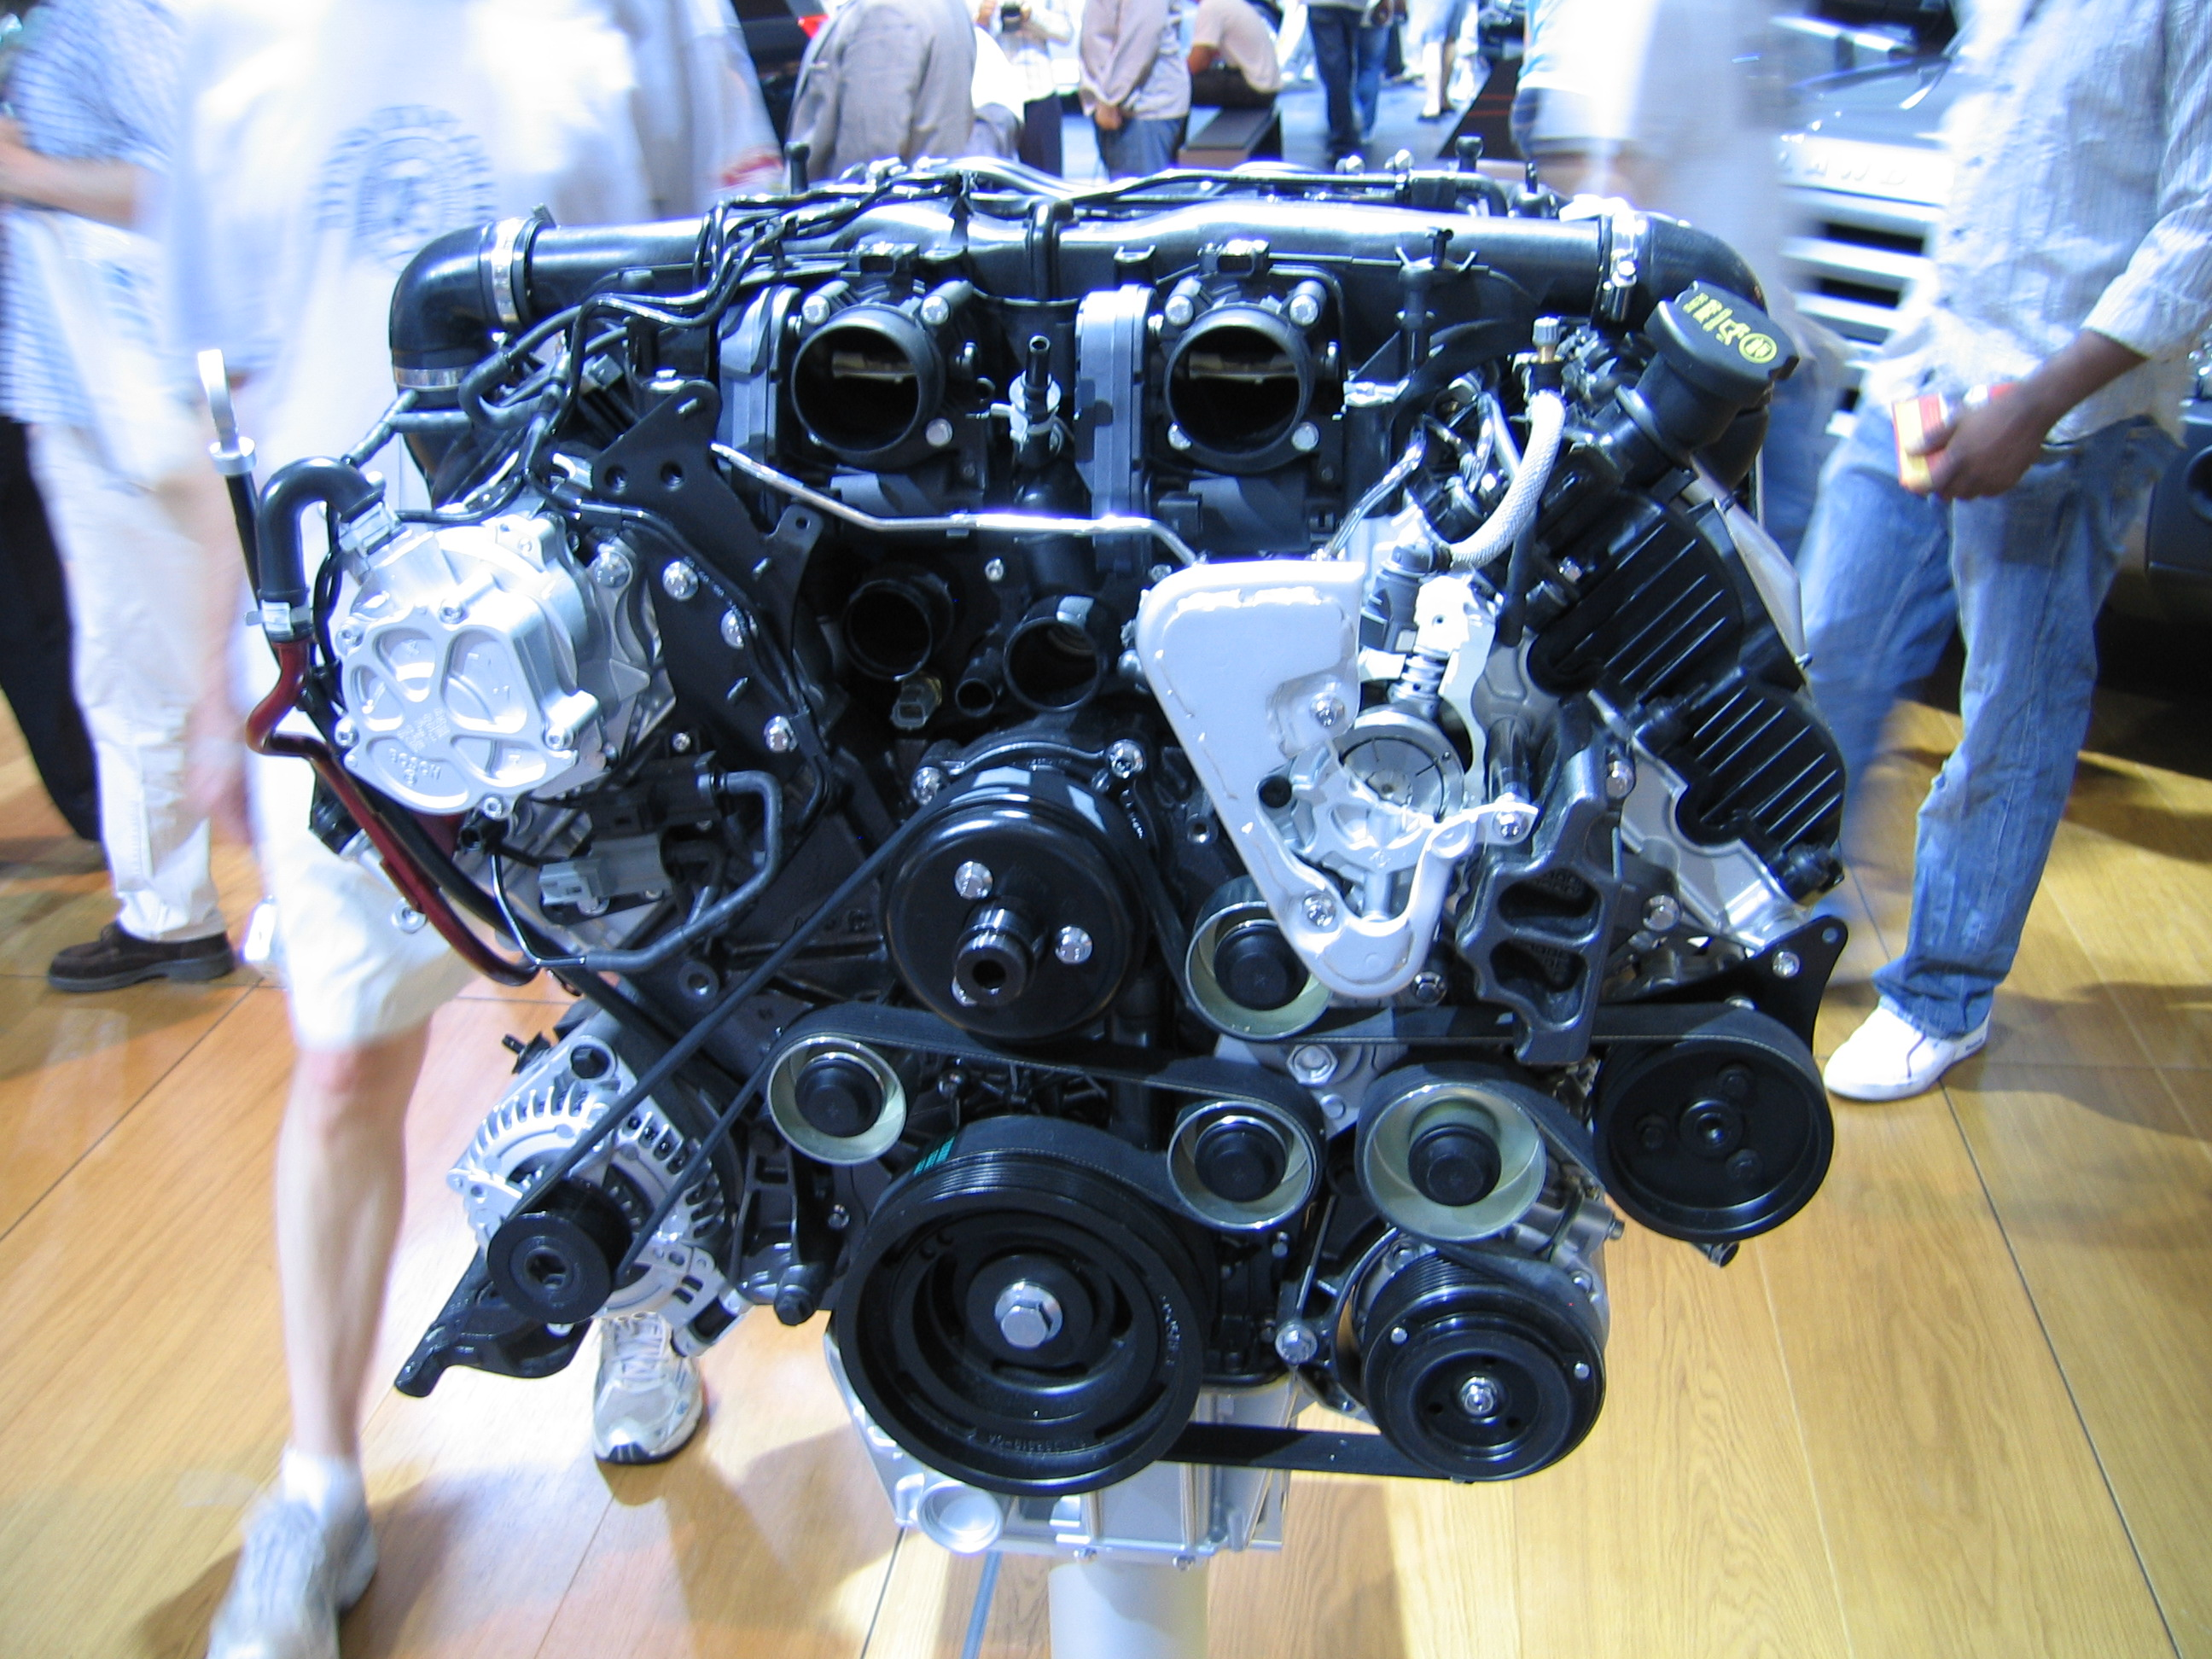 file range rover v8 supercharged engine flickr robad0b jpg